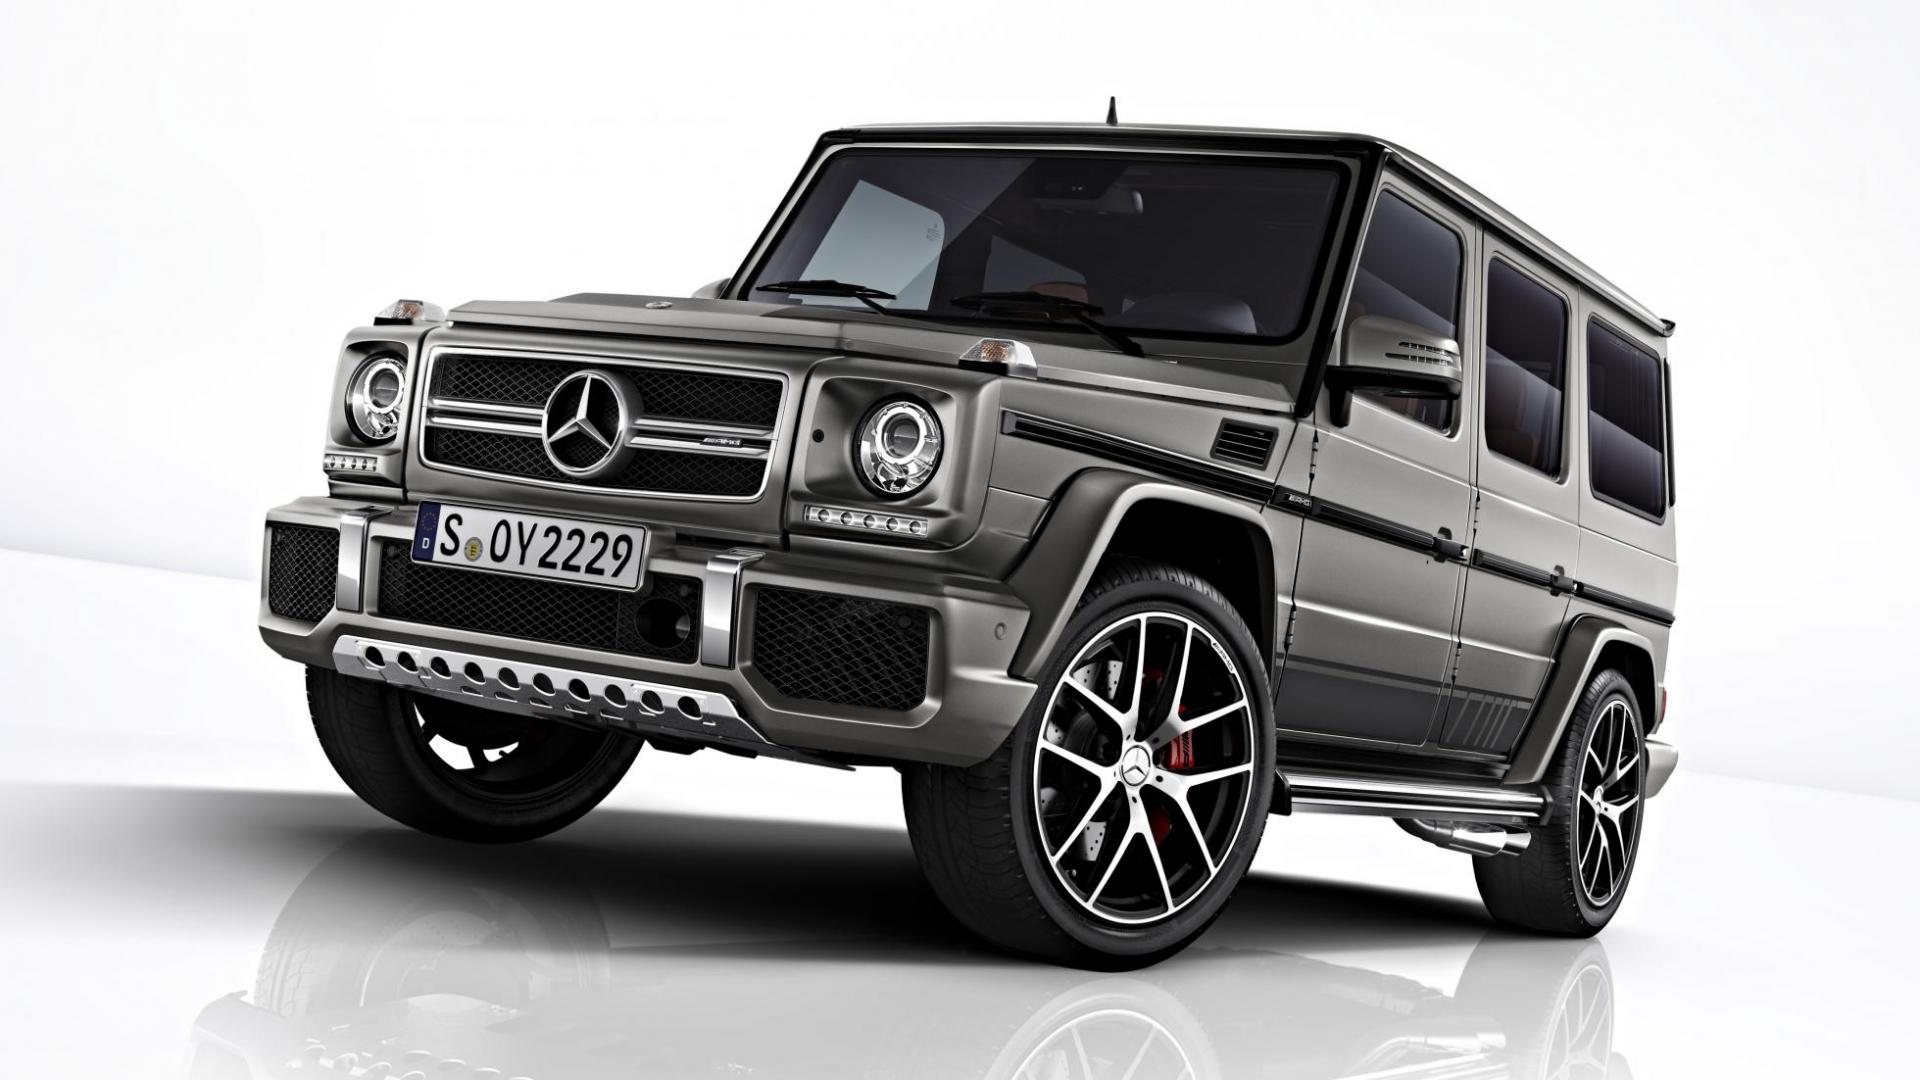 de mercedes amg g 65 exclusive edition is de duurste topgear. Black Bedroom Furniture Sets. Home Design Ideas